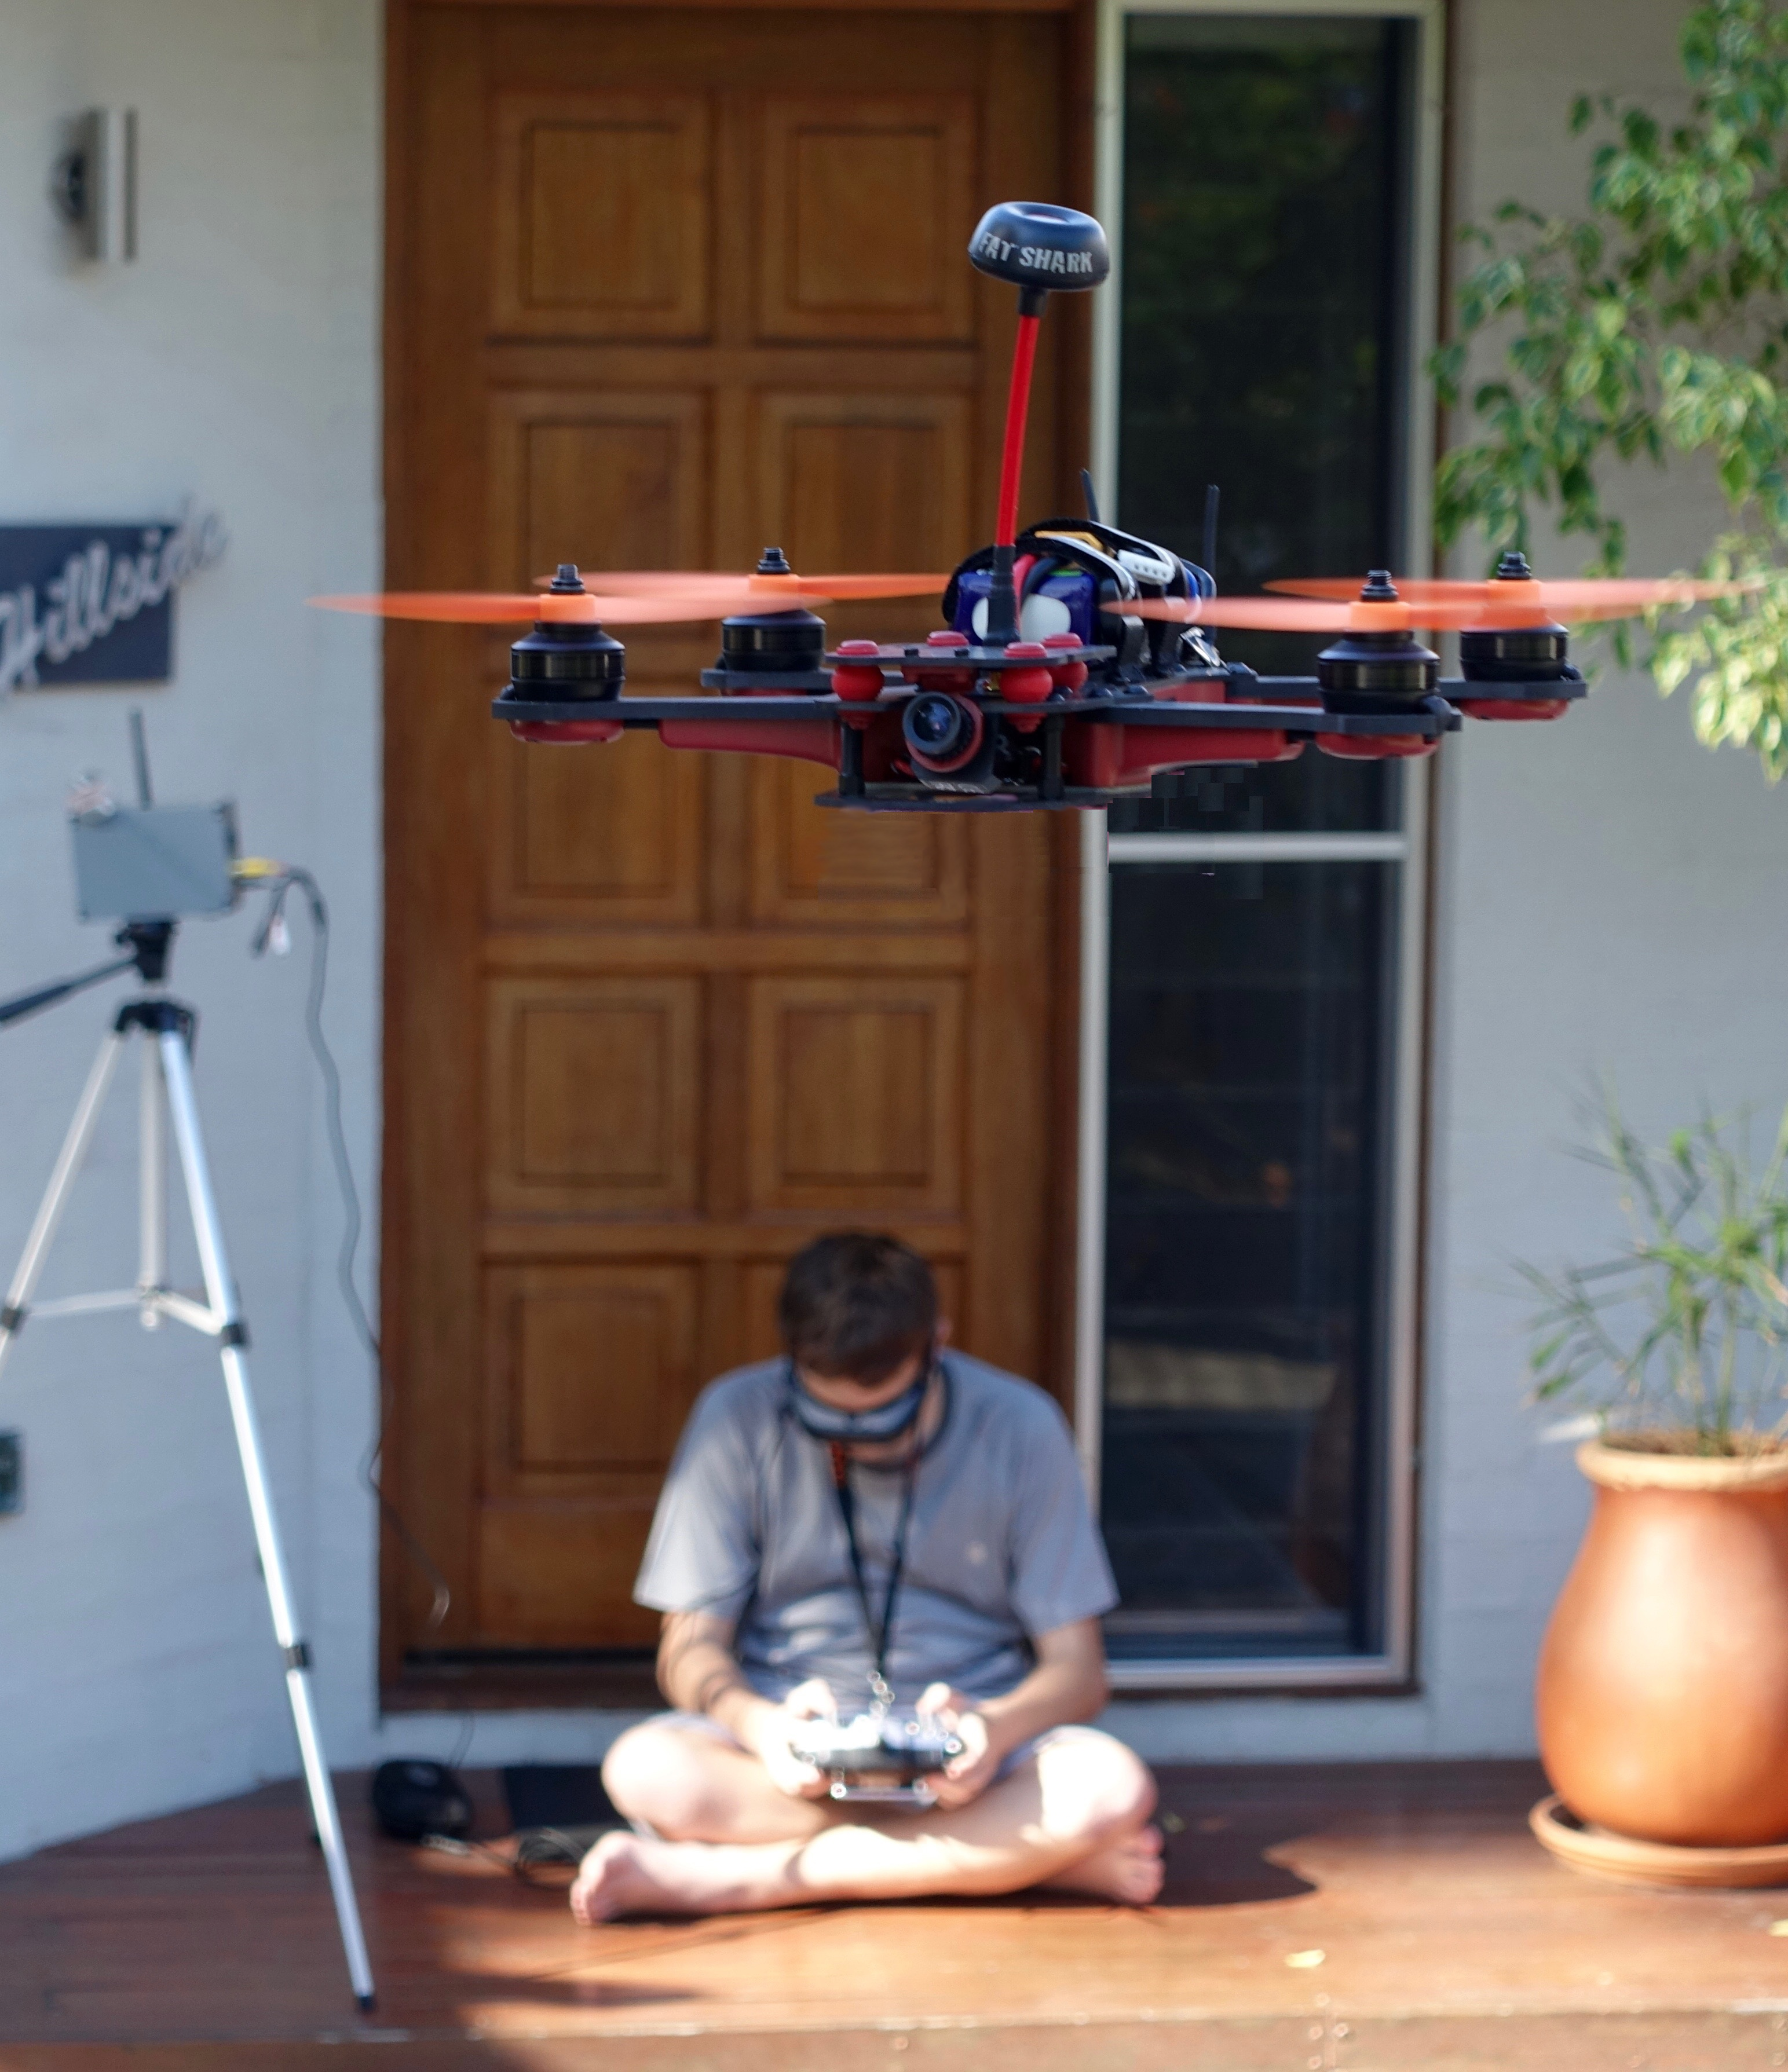 Using a UAV to get some outstanding pictures or film of your property listing is easy once you know how to fly.